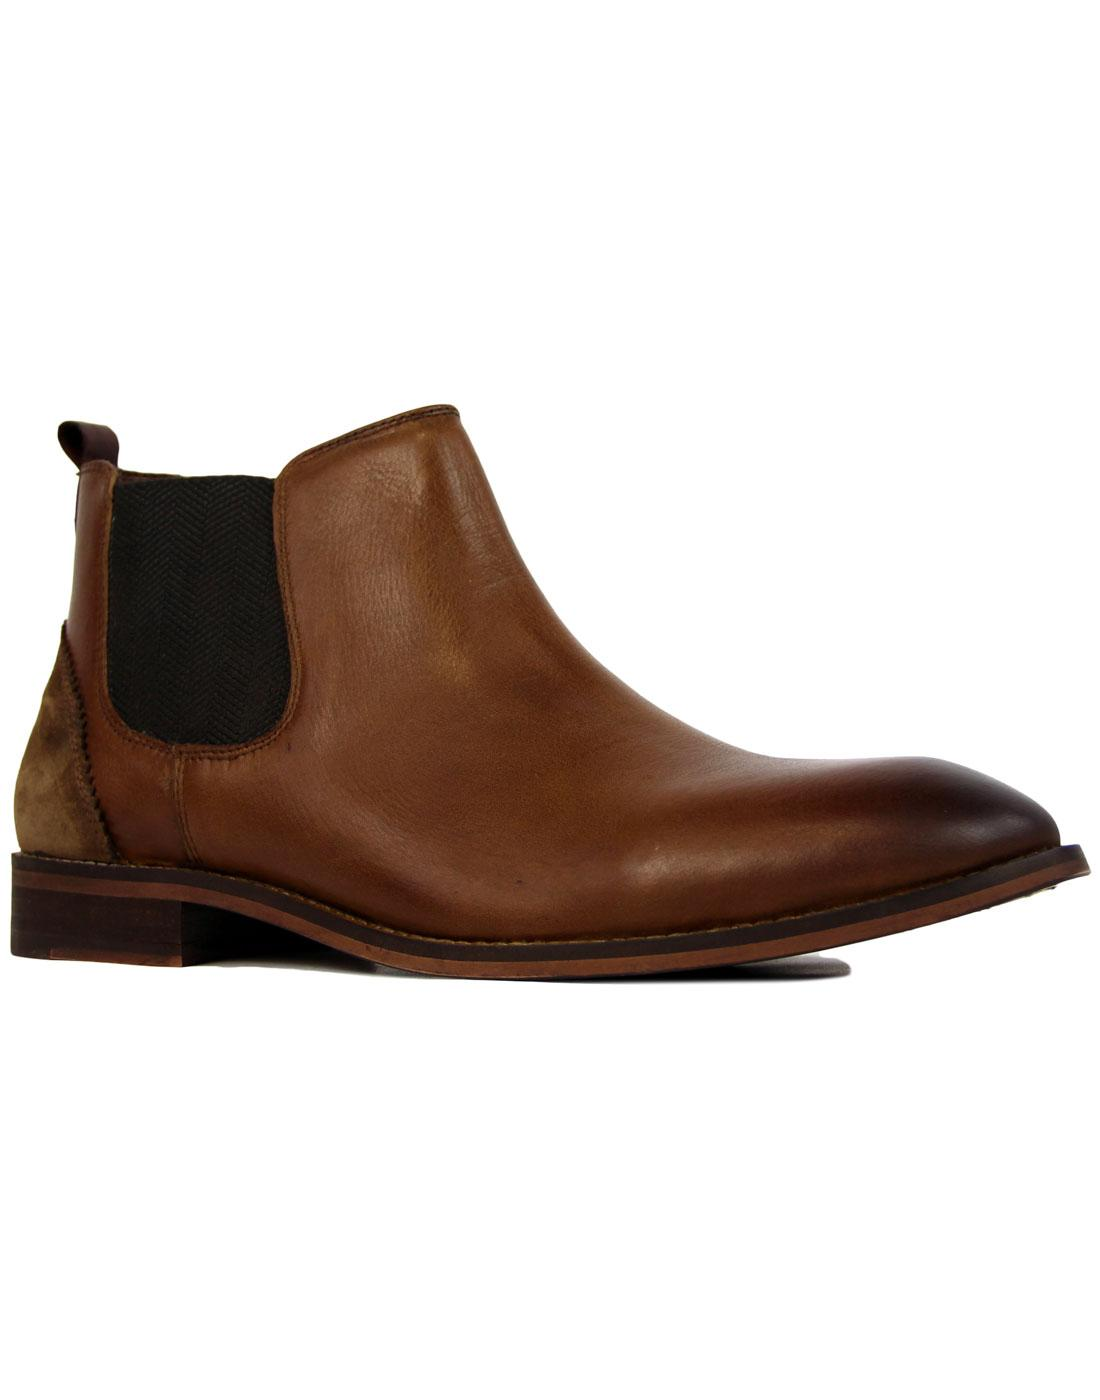 North LUKE 1977 Mens Mod Tan Leather Chelsea Boots